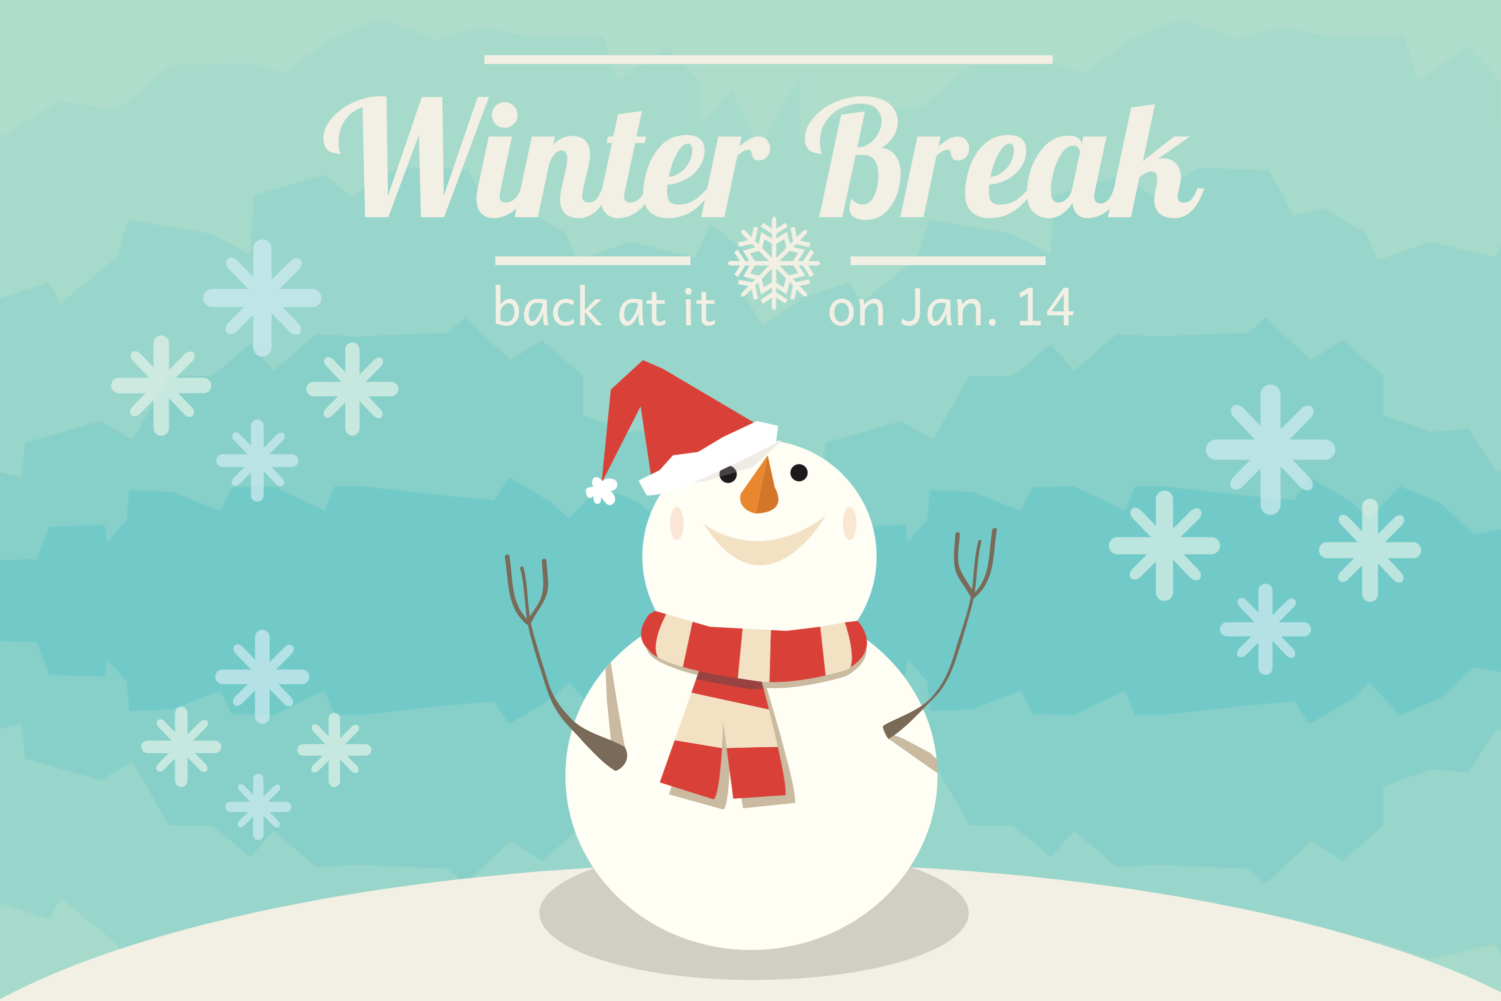 It's winter break. Enjoy the holidays and time with family. Classes begin on Jan. 14.